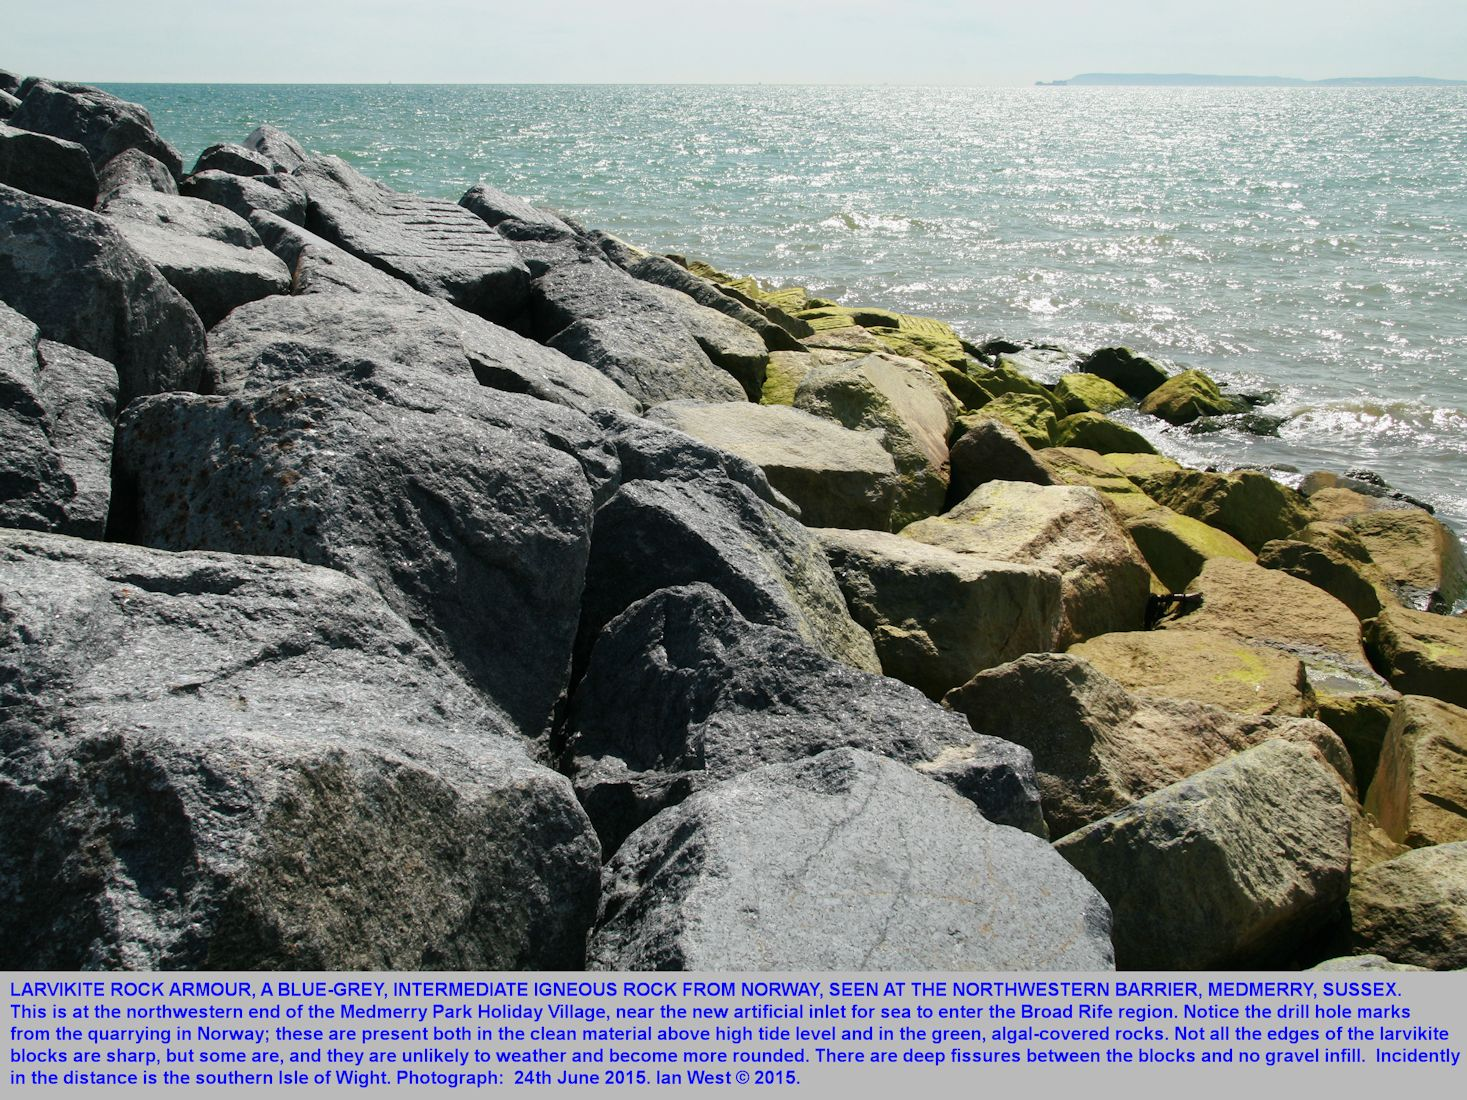 Blocks of larvikite rock armour in the northwestern coastal barrier, not groyne, of Medmerry Park Holiday Village and sea front, Bracklesham Bay, Sussex, 24th June 2015